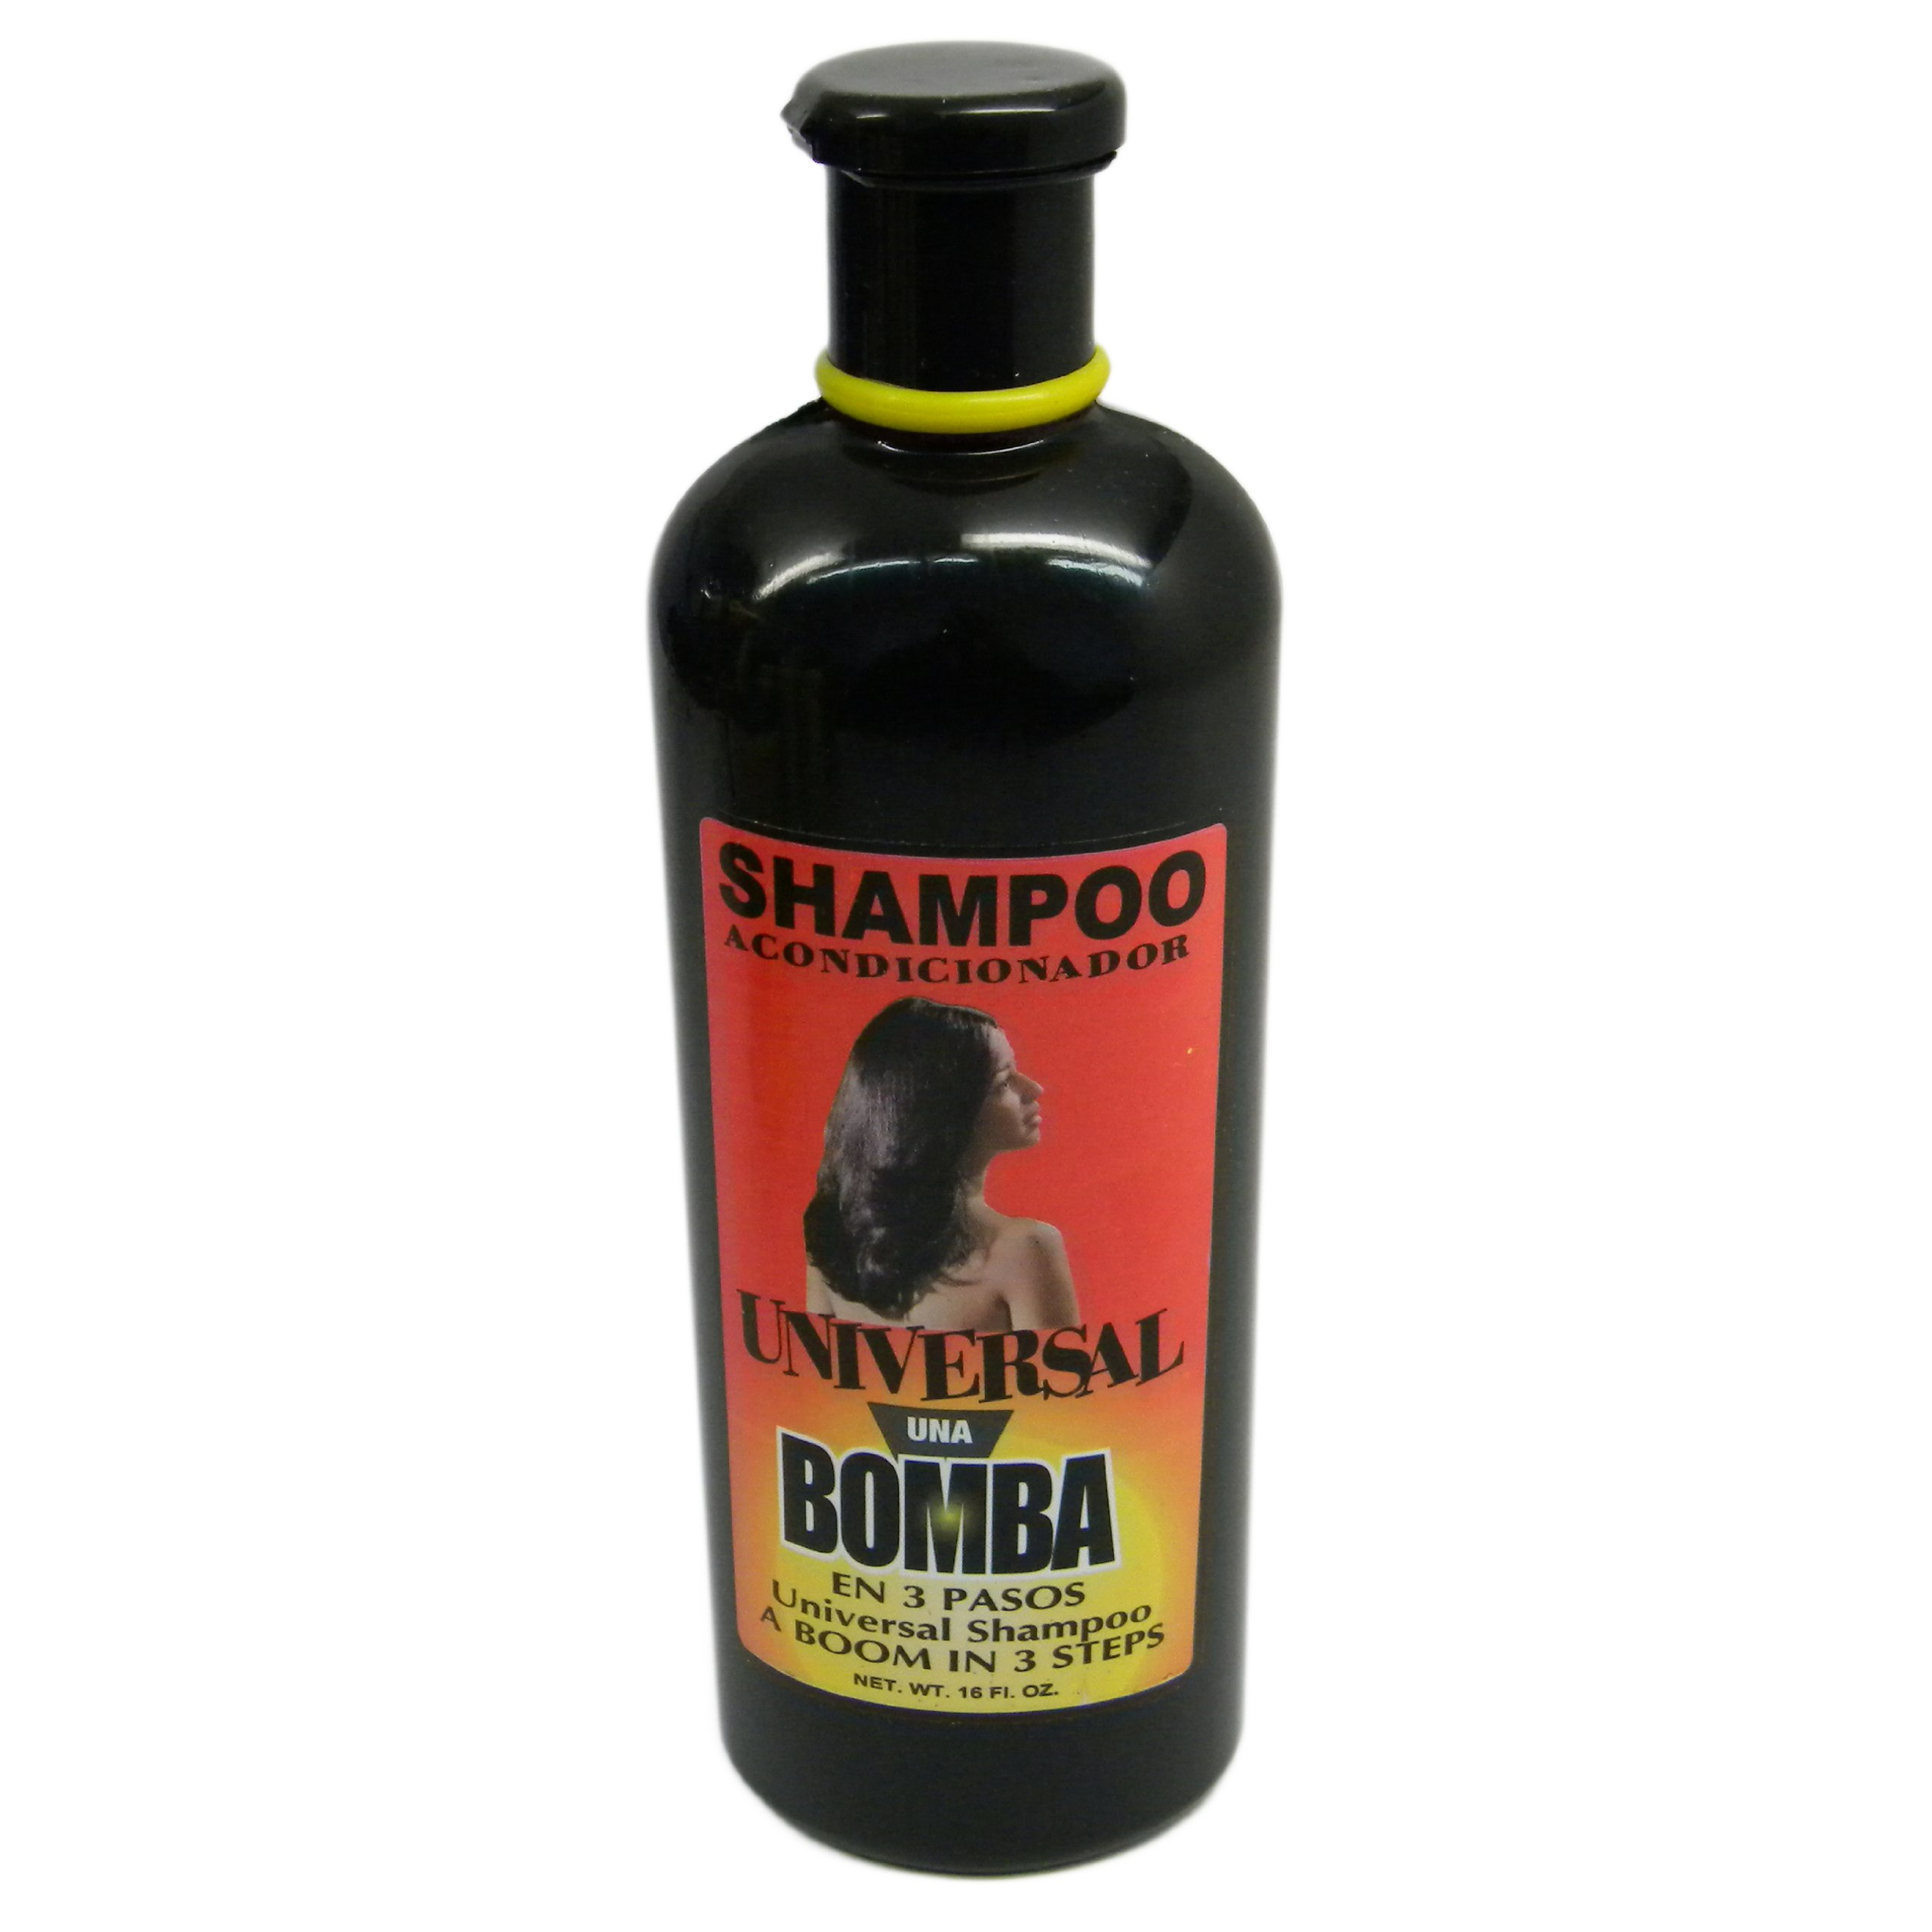 Amazon.com : Dominican Hair Product Una Bomba Shampoo 16oz by Universal by Faviola Carrect : Standard Hair Shampoos : Beauty